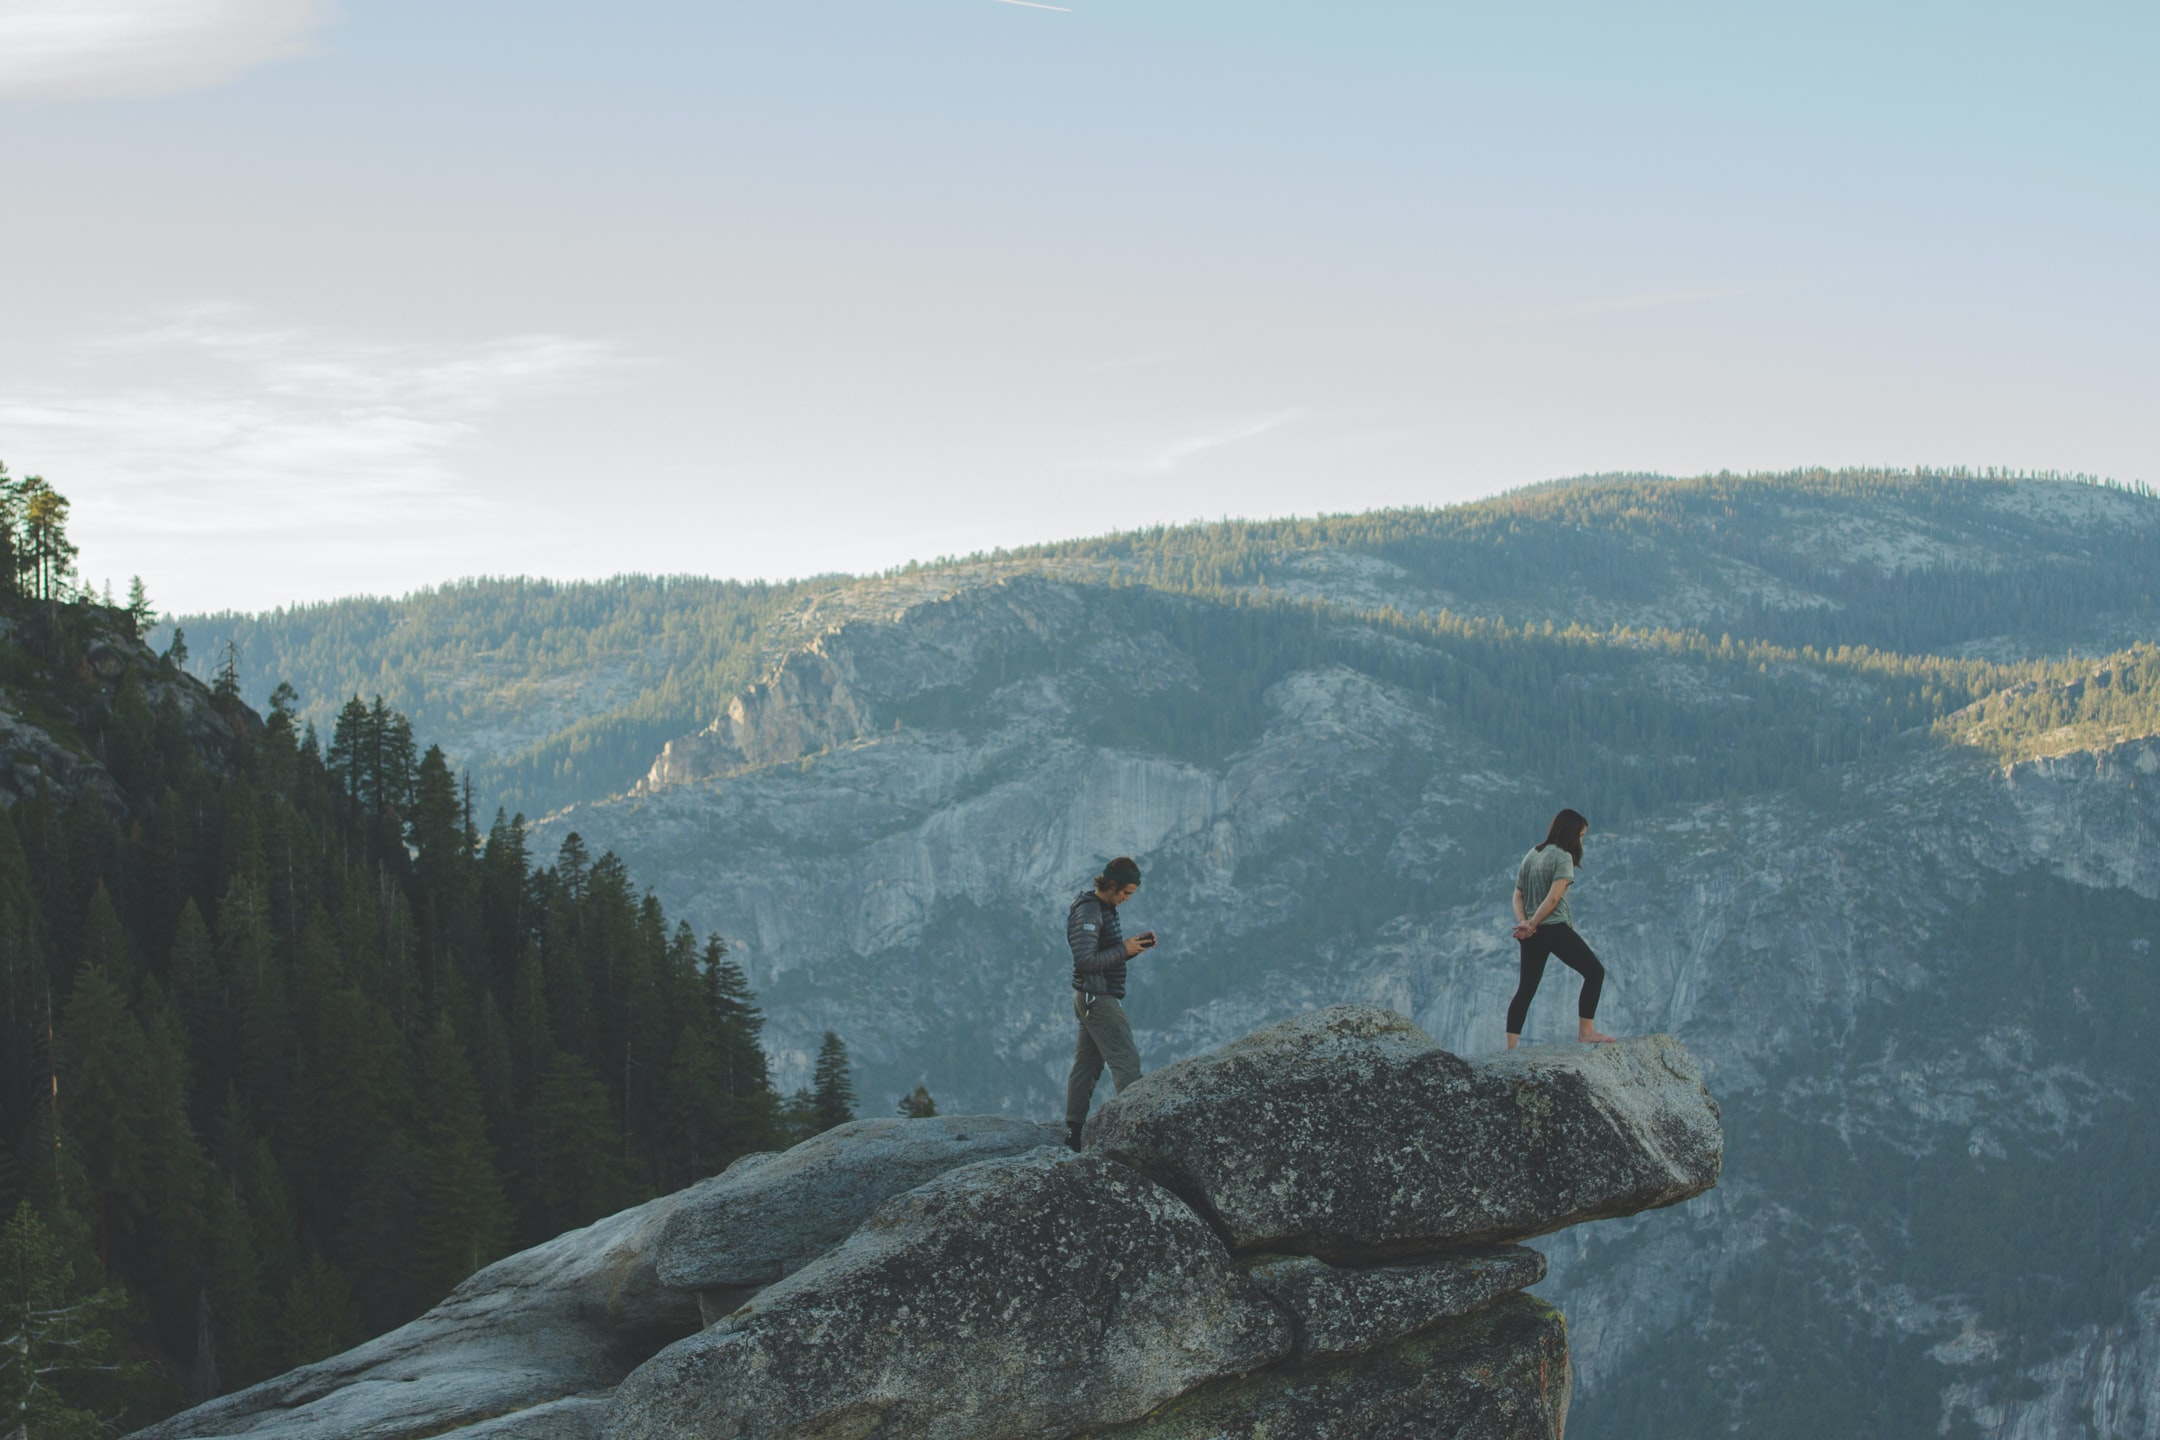 Extreme hikers peer over a rock ledge atop a mountain landscape